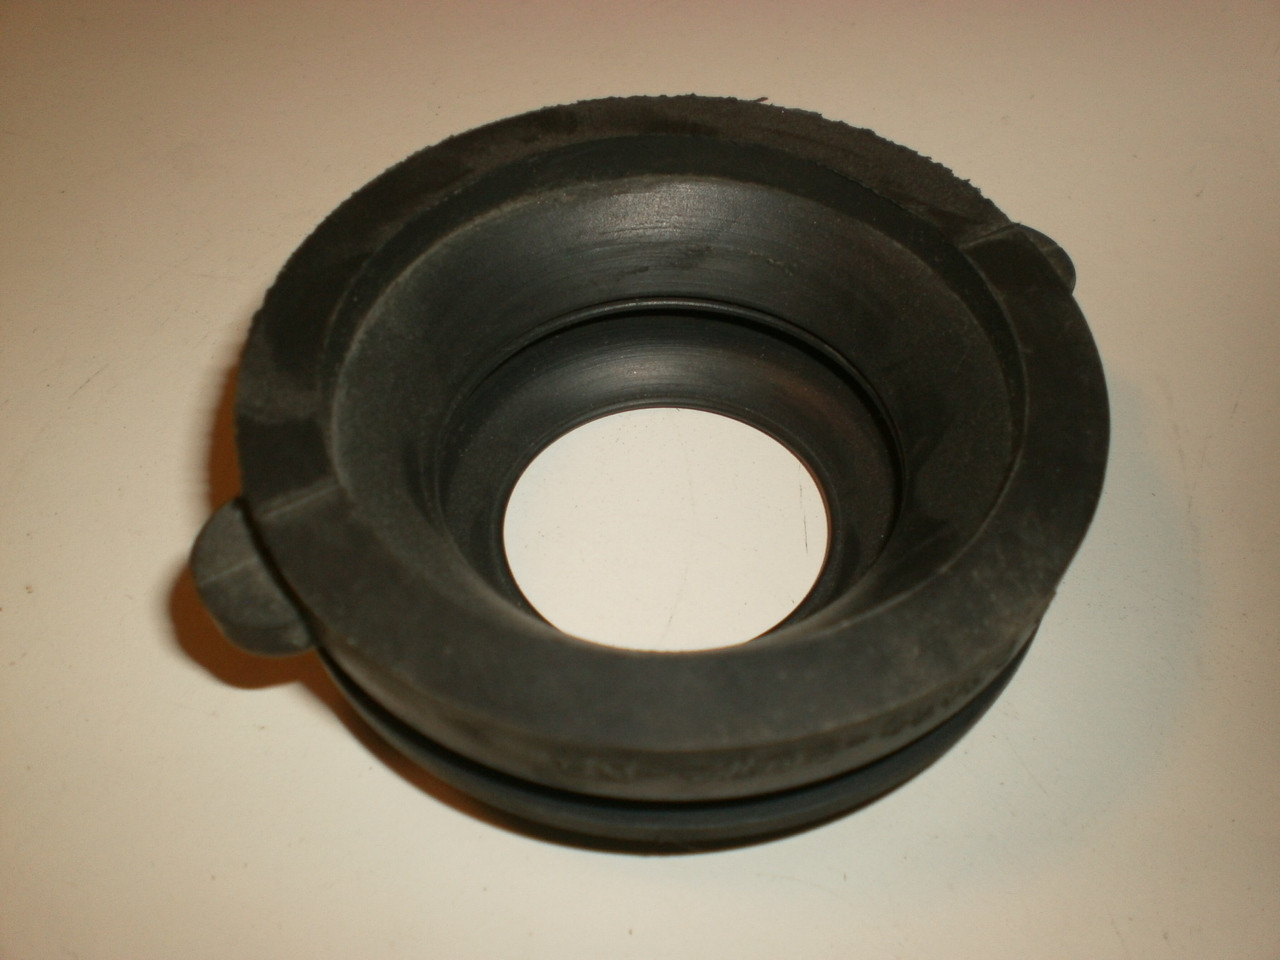 Ford Fuel Tank >> 1994-1997 1987-1993 Ford Mustang Fuel Filler Neck Gas Tank ...